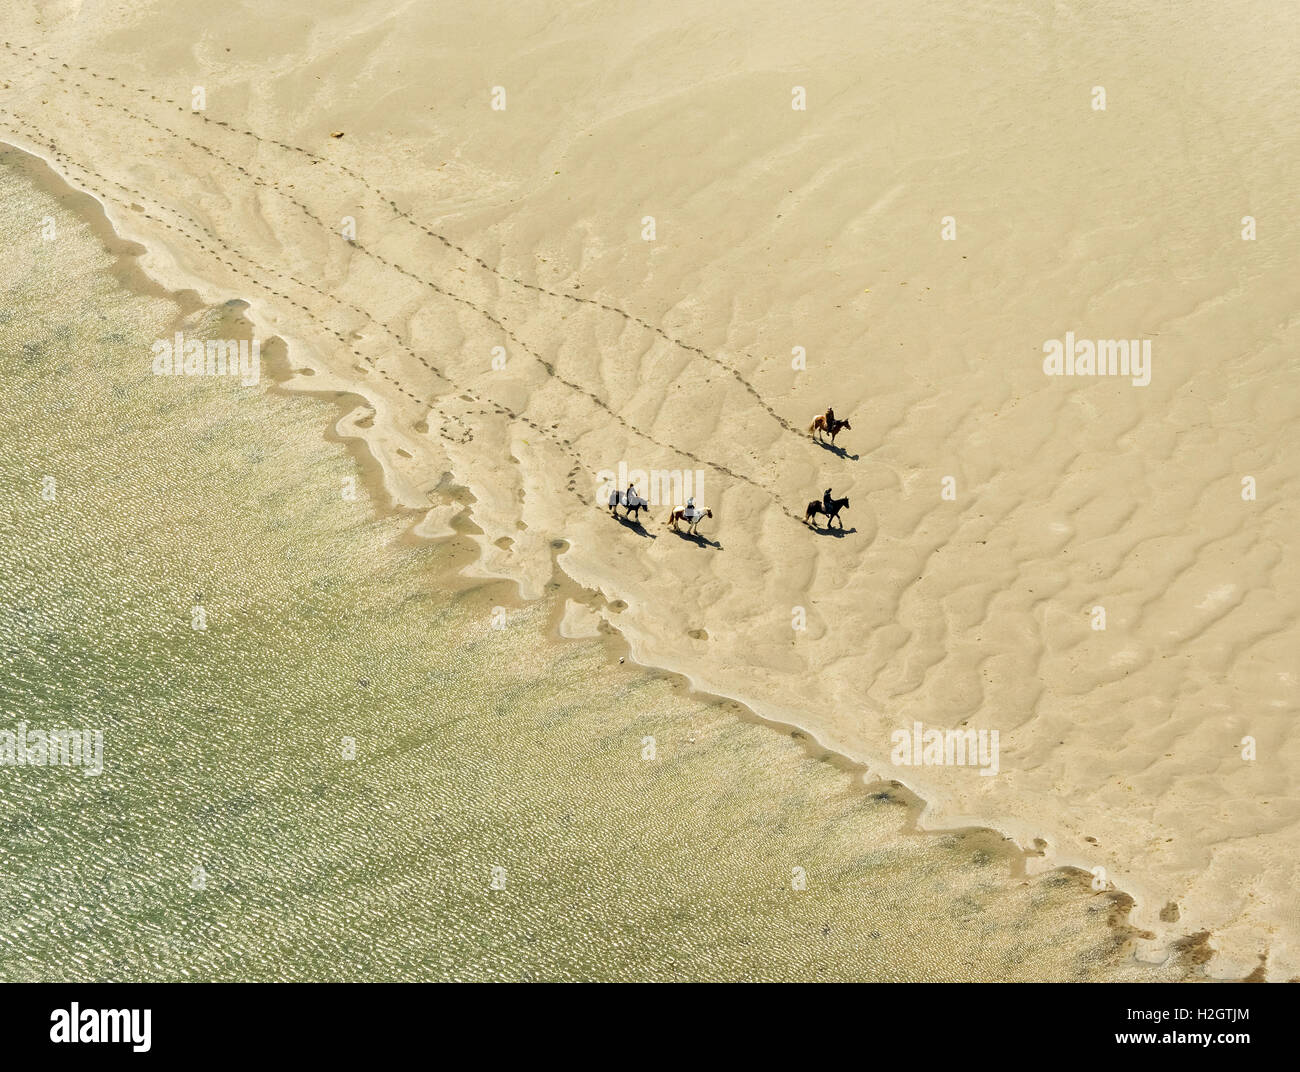 Rusheen Bay, horse riders on sandy beach, Galway, County Clare, Ireland - Stock Image